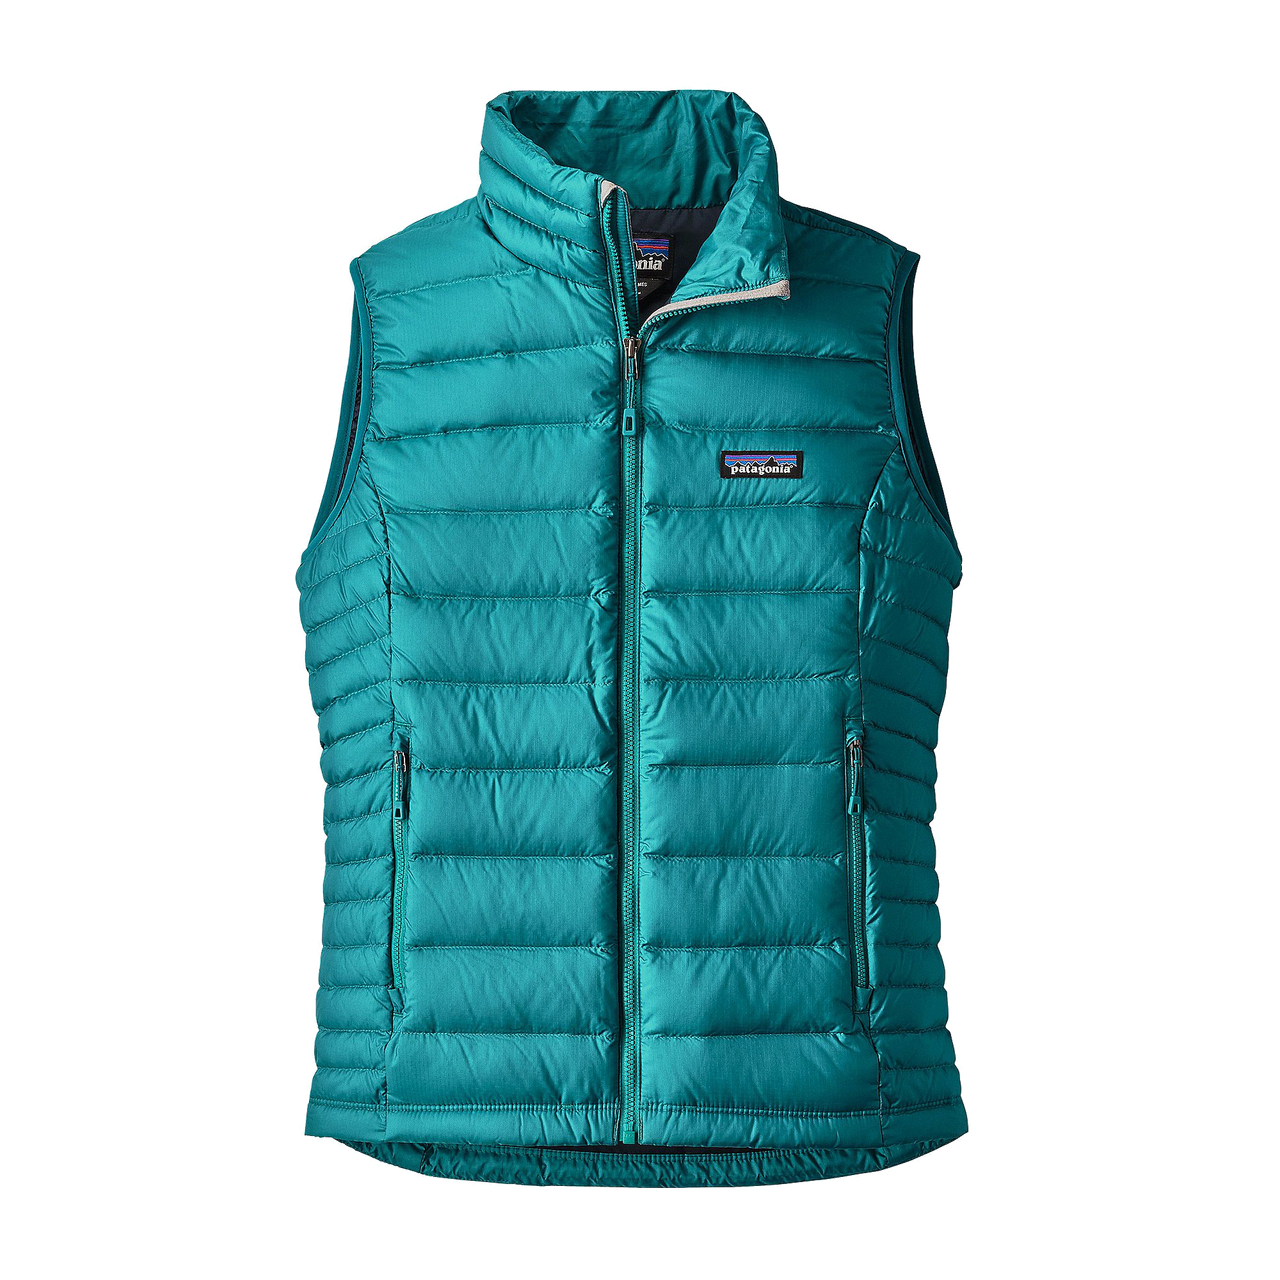 Patagonia Women's Down Sweater Vest Elwha Blue - Gear West Ski and Run